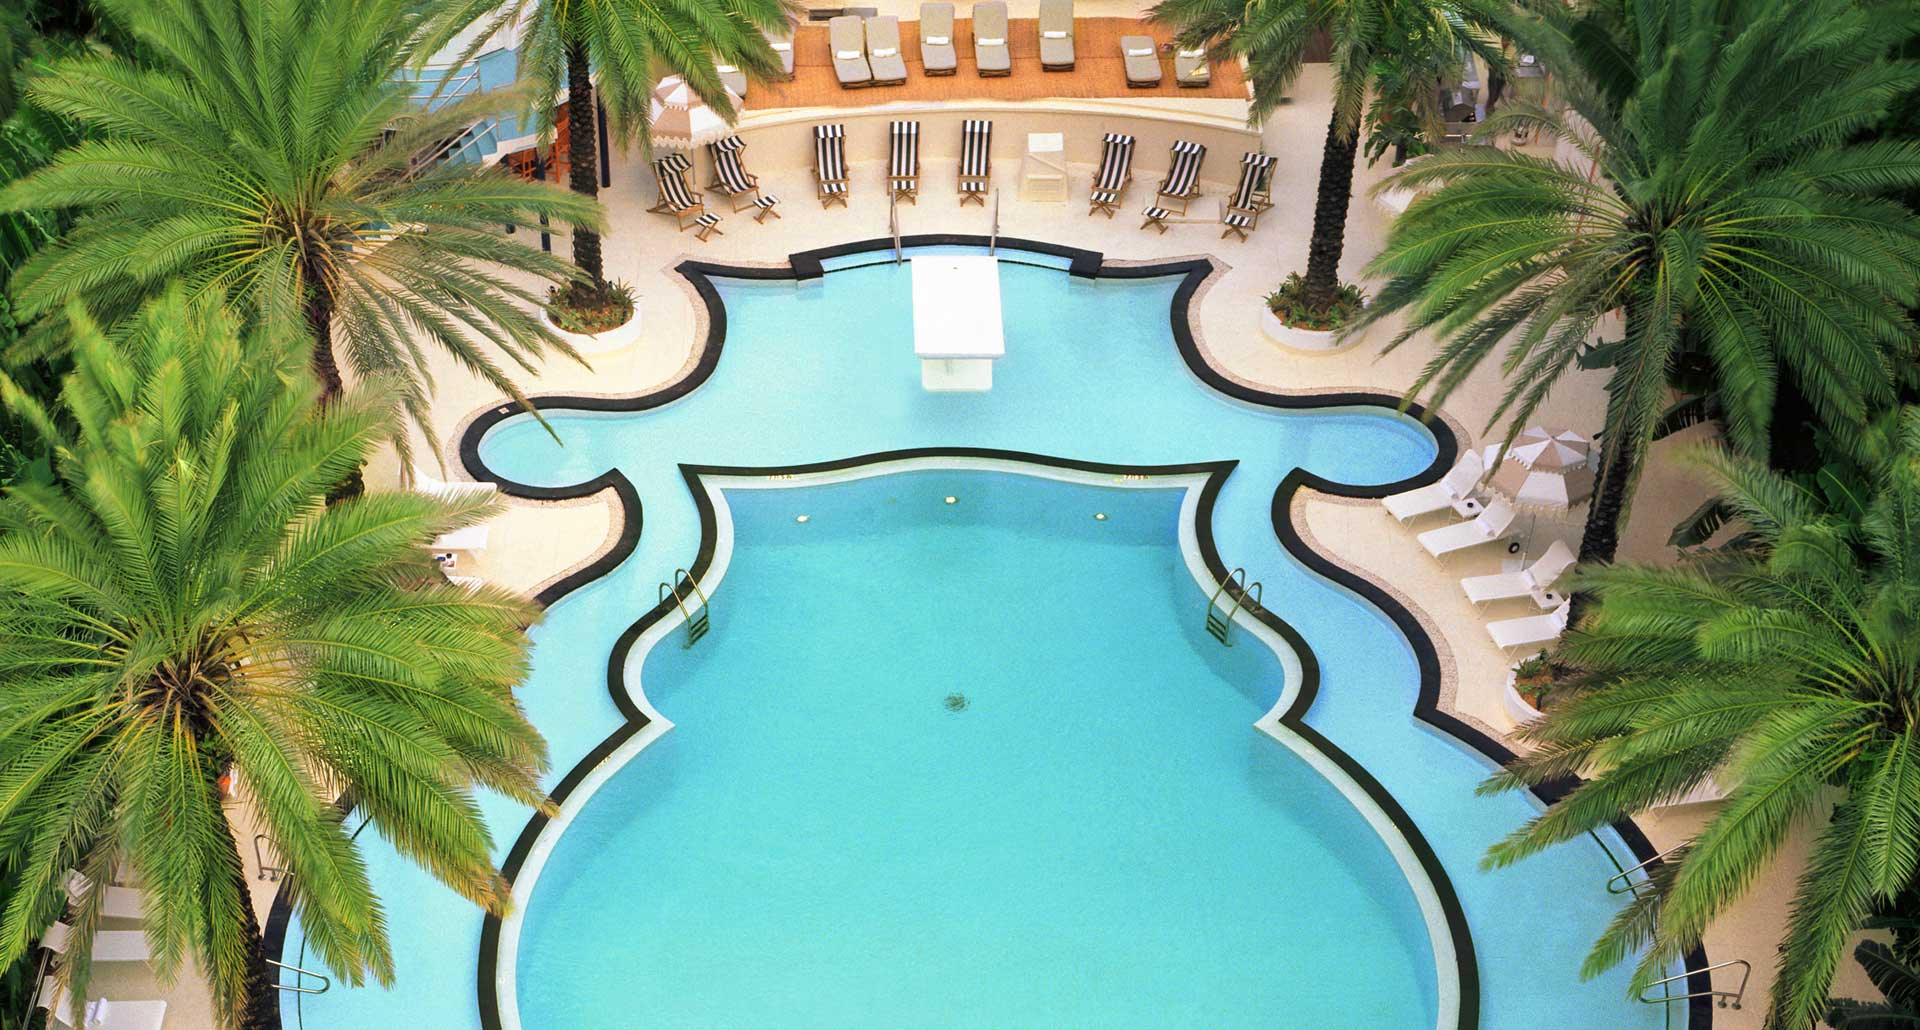 The Raleigh - best hotel pool in South Beach